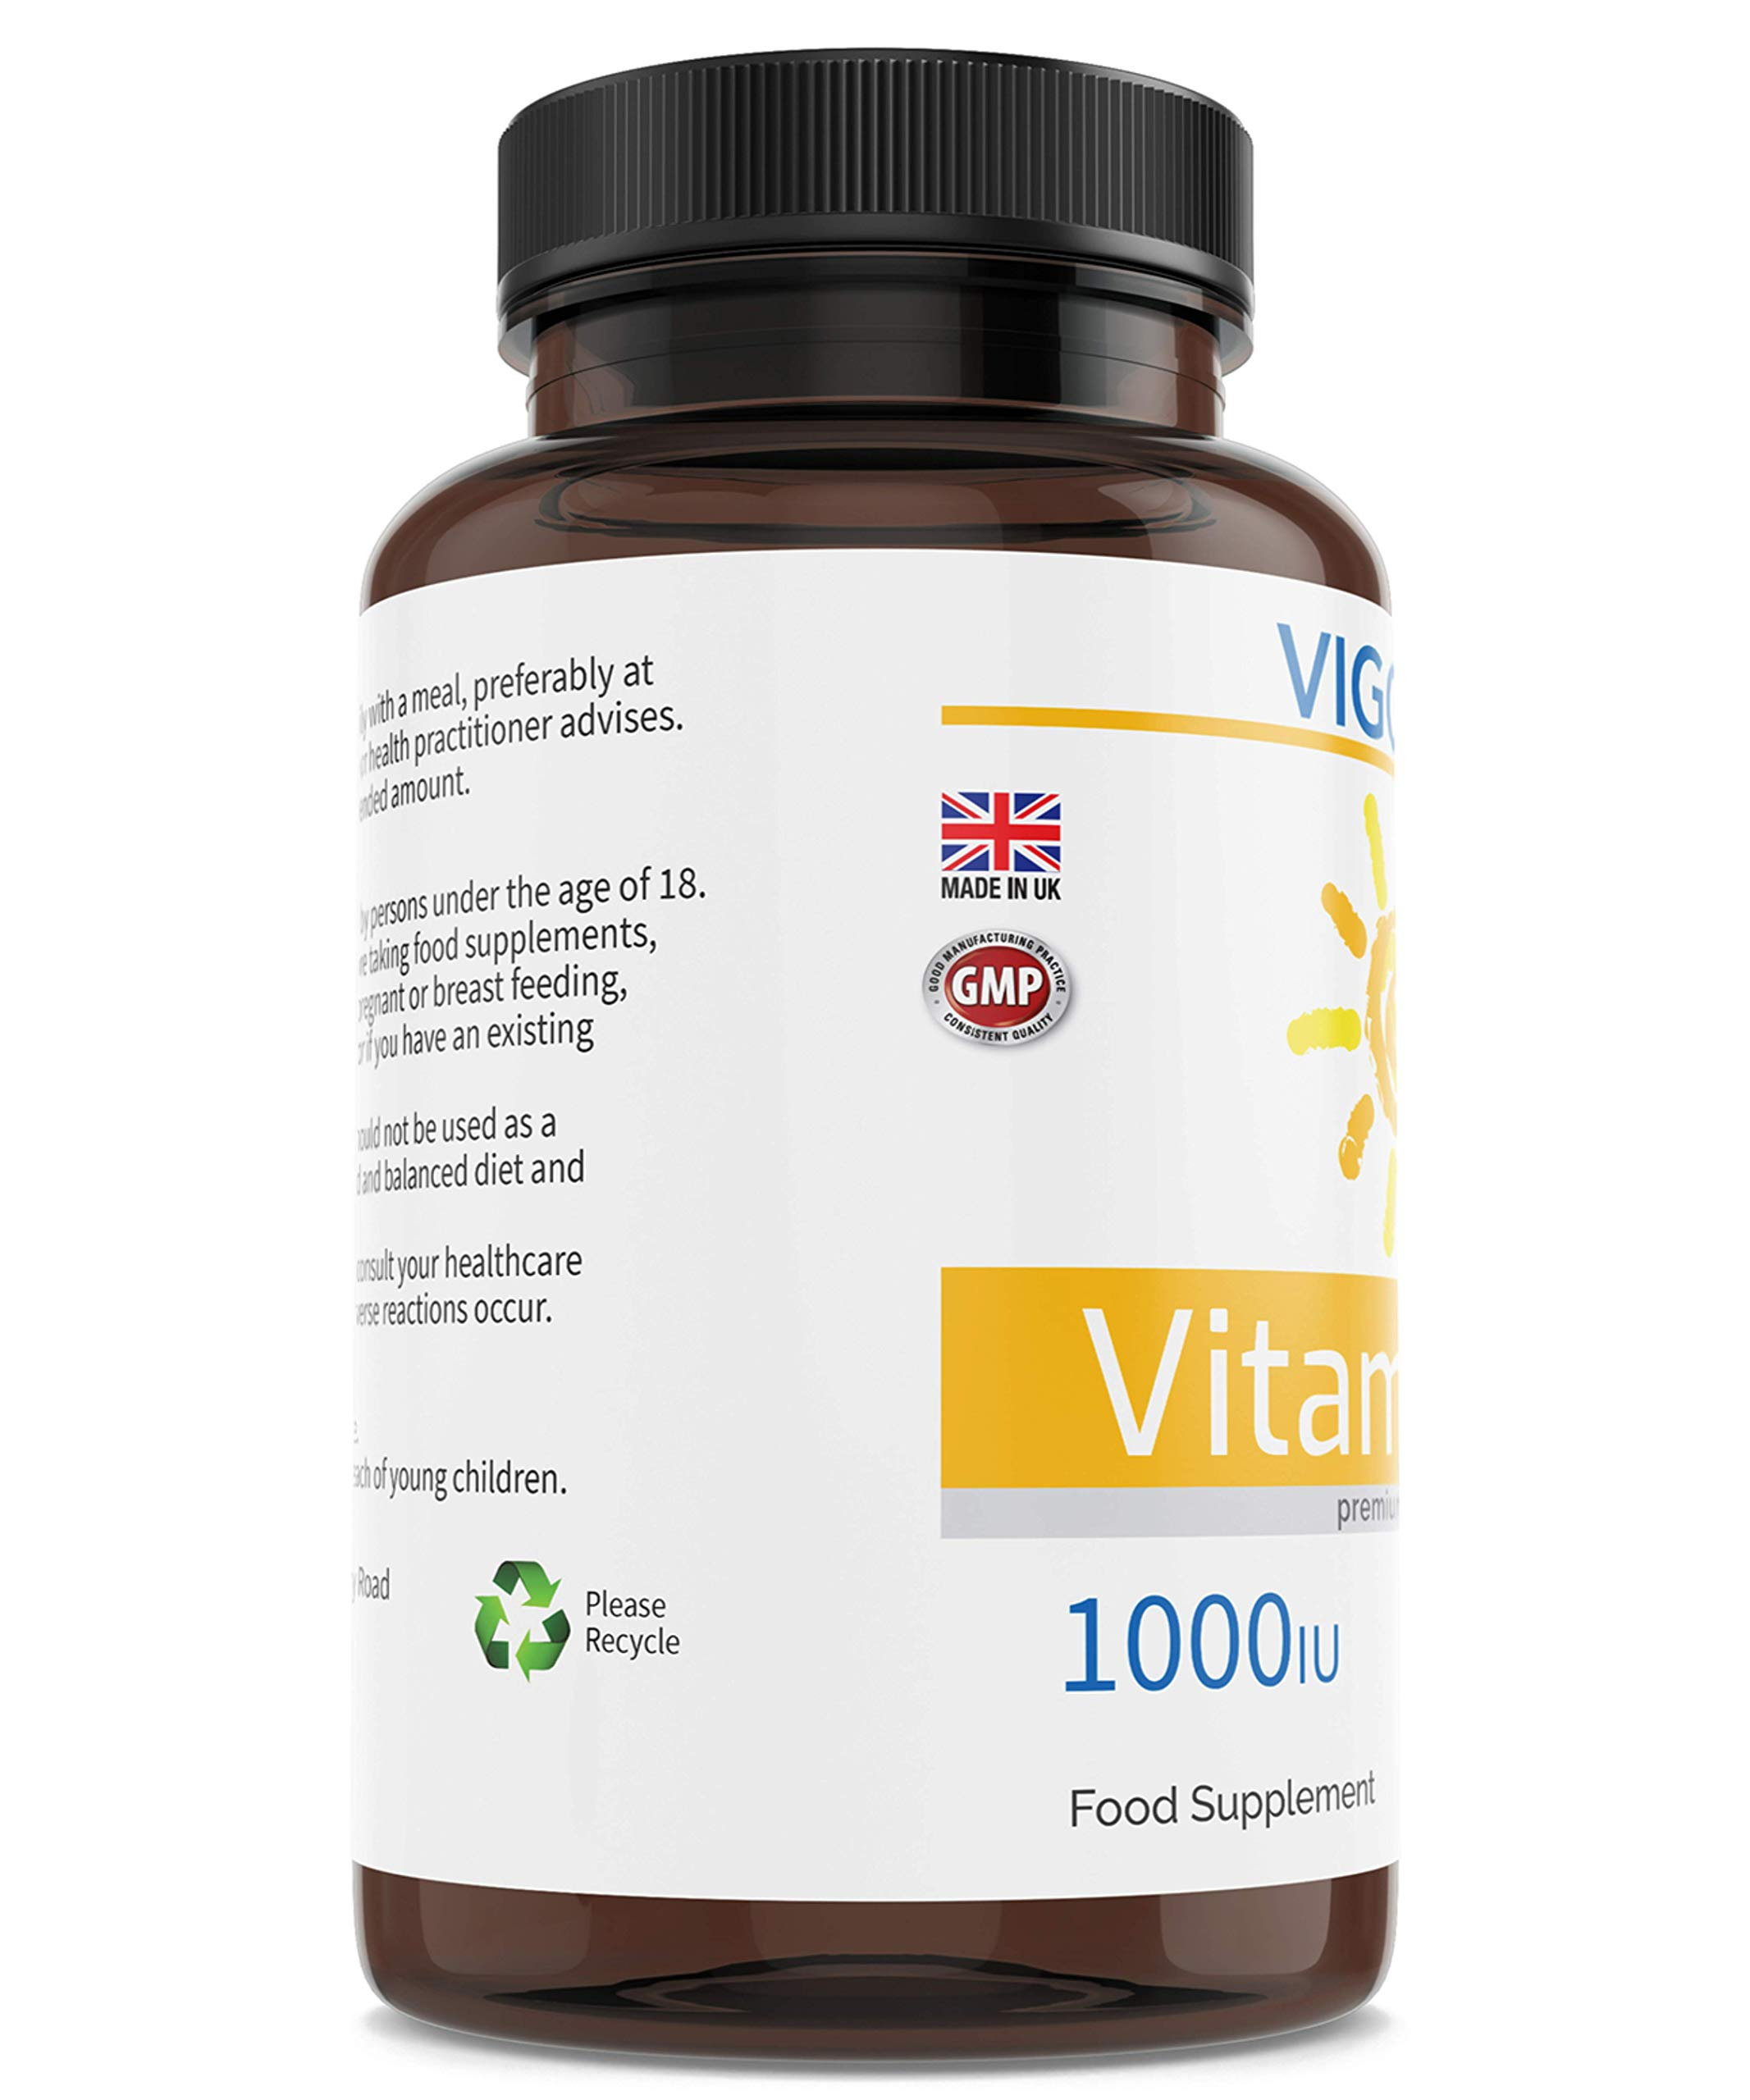 Vitamin D3 Food Supplement for Immune Support, Healthy Joints, Muscles, and Strong Bones and Teeth - 1000 IU Optimal Strength 180 Softgels - 6 Month Supply - Non-GMO - Allergen-Free - Made in The UK